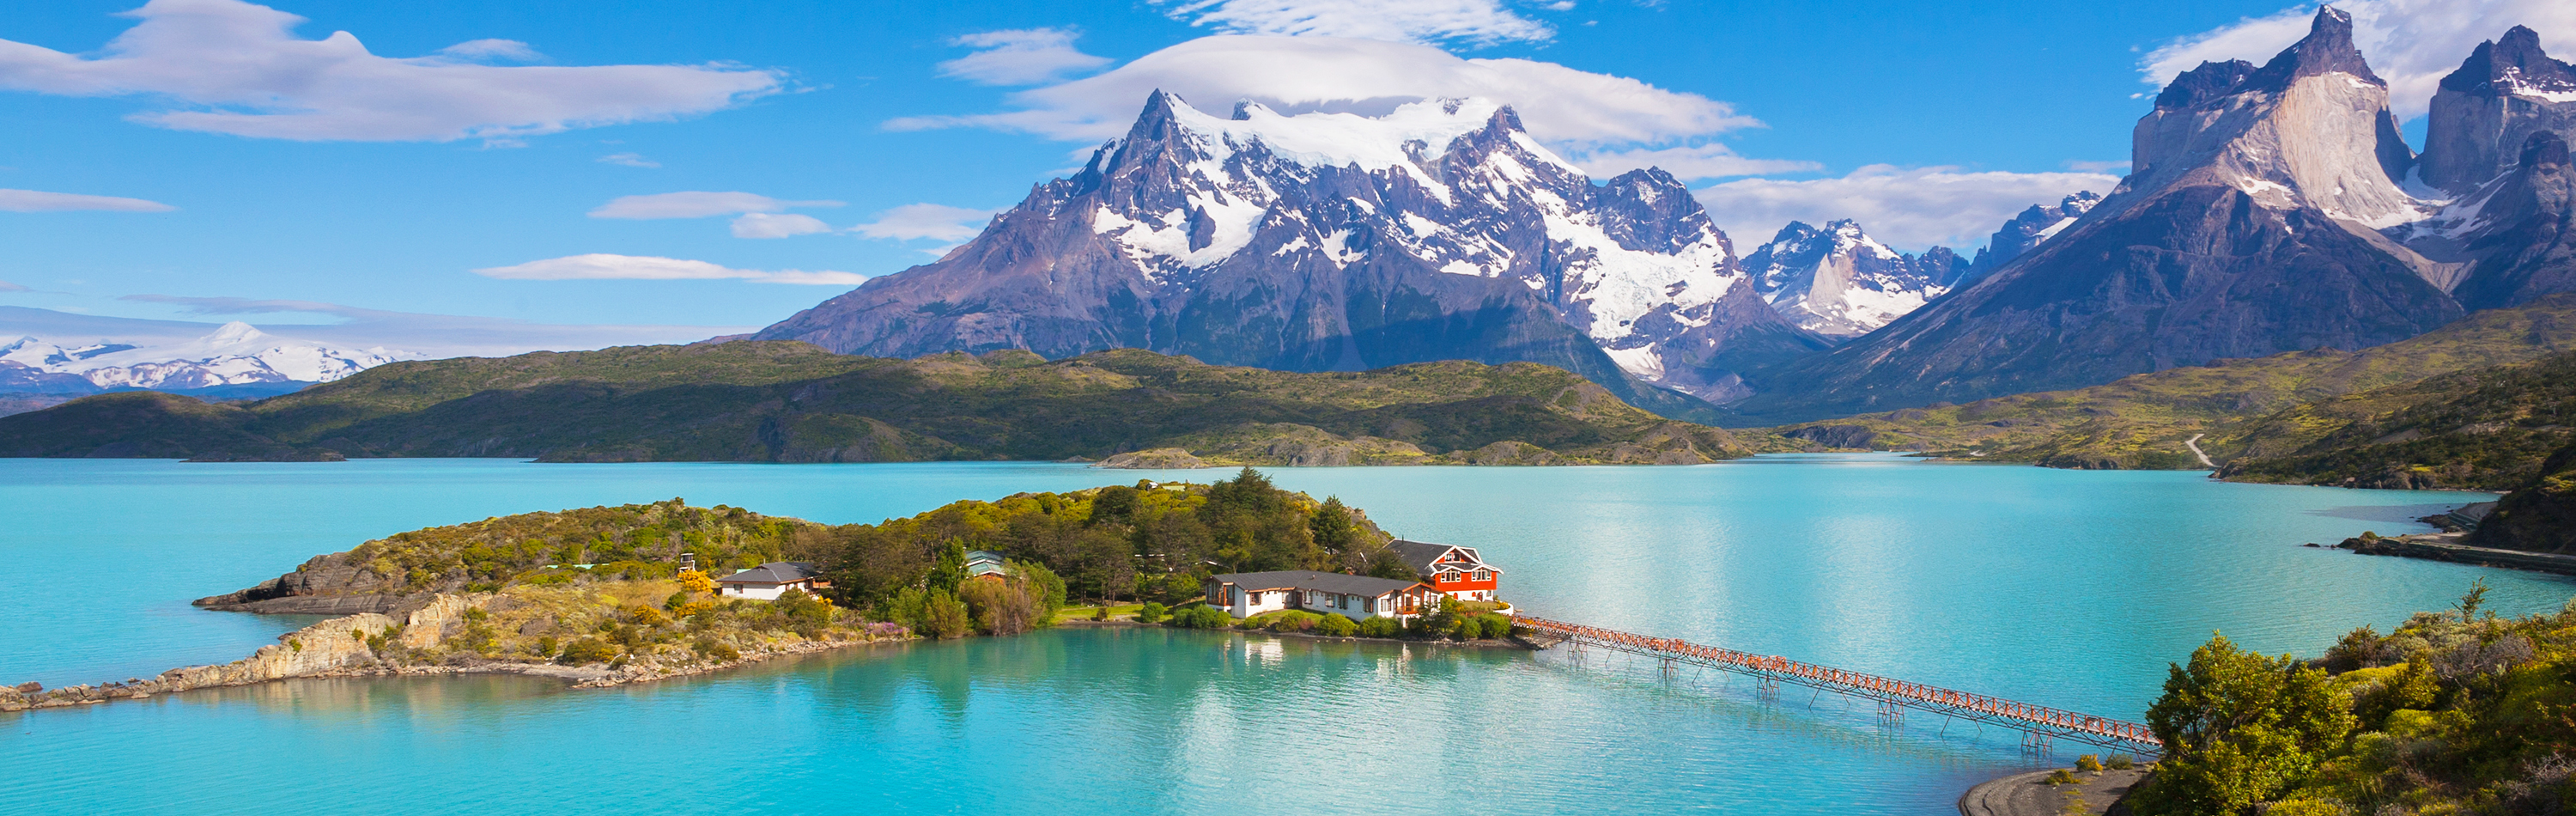 Chile Tour - Pehoe Lake in Patagonia